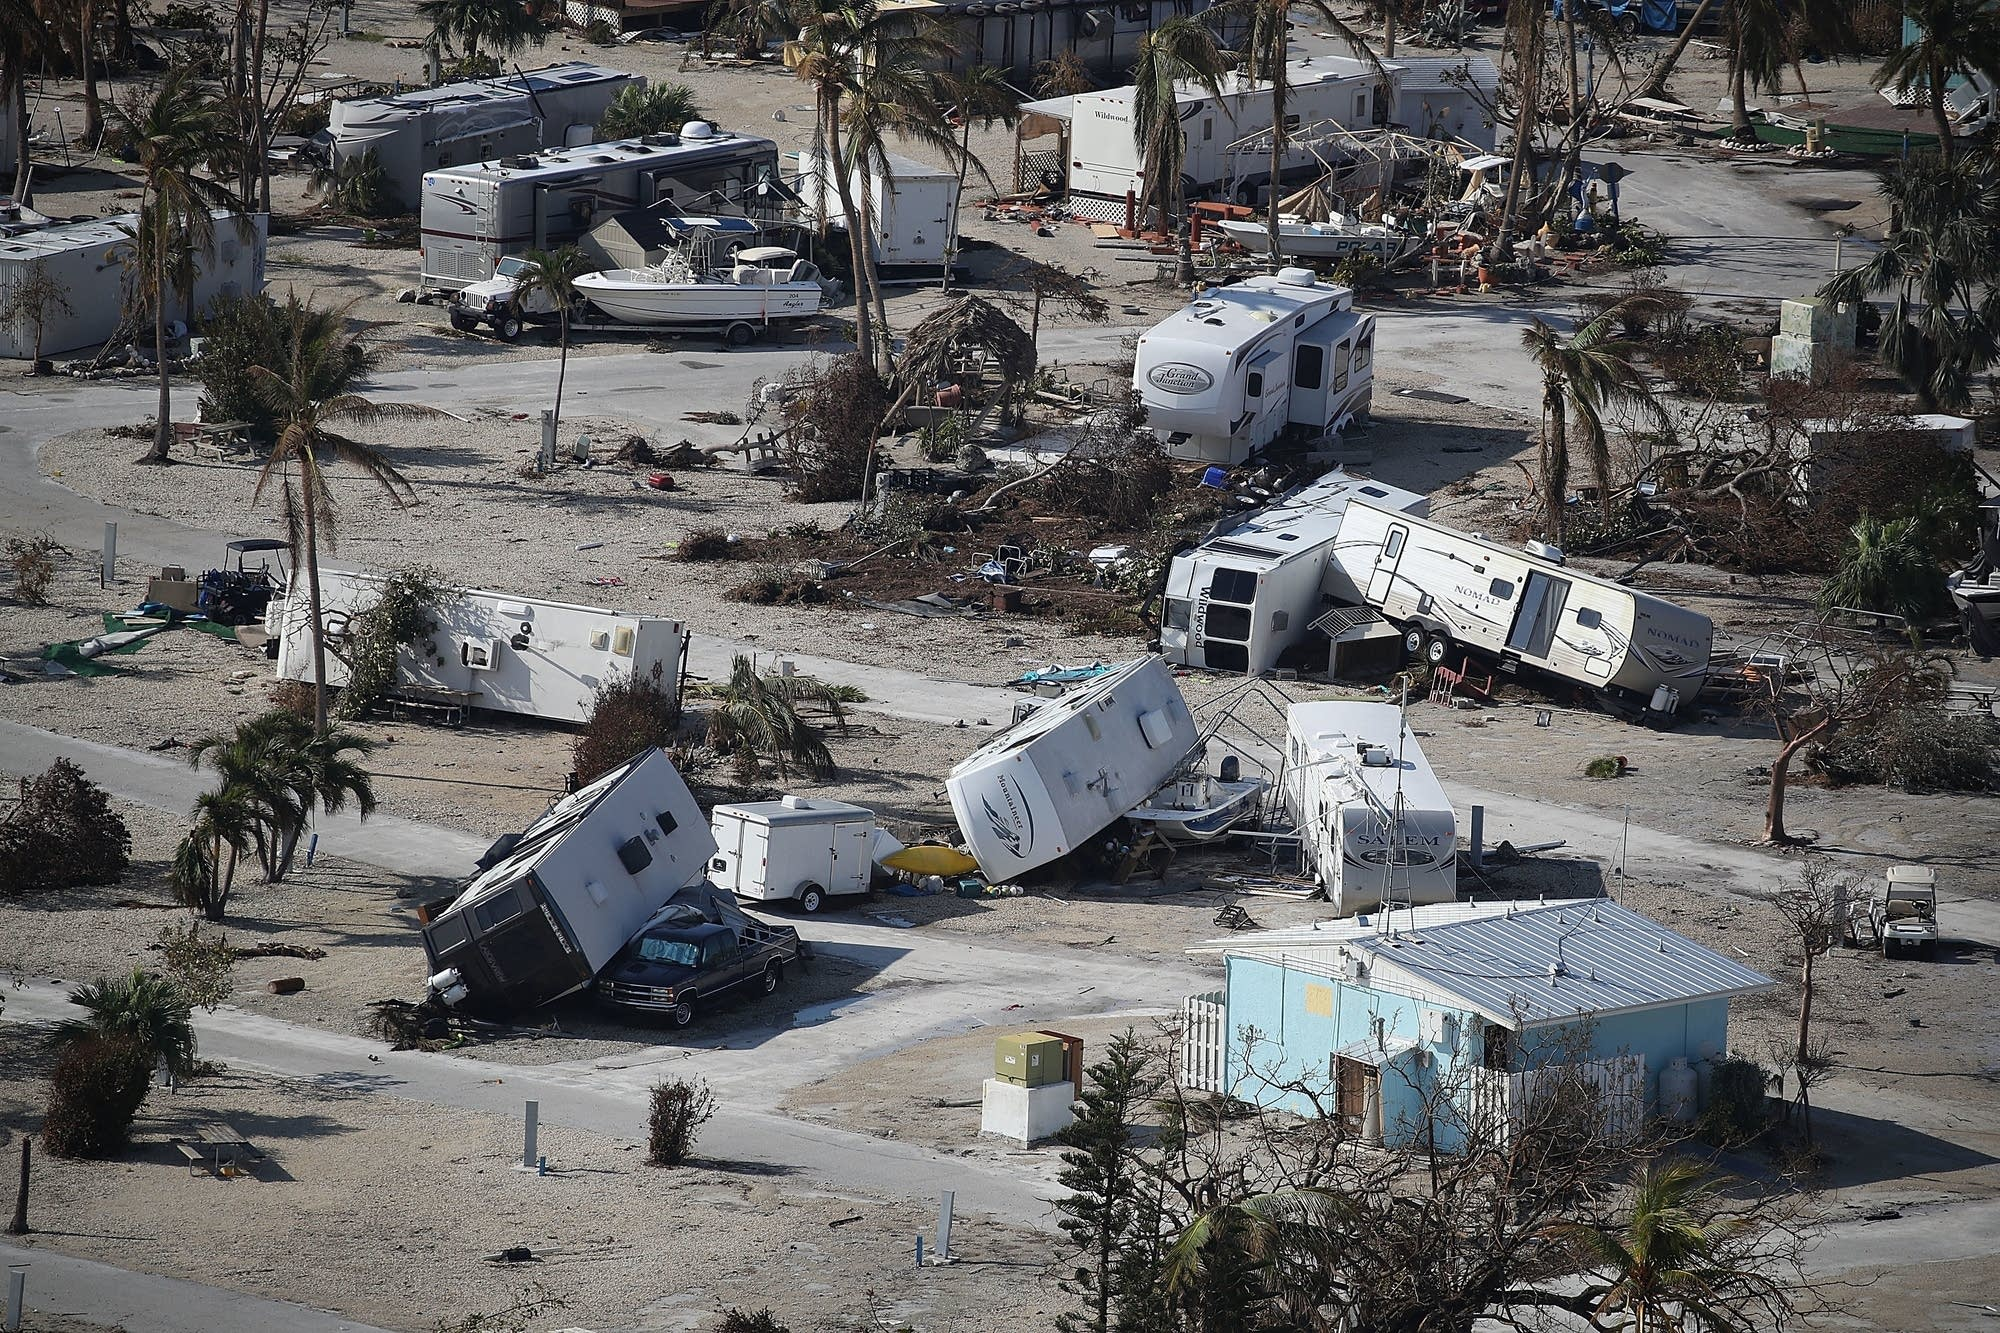 Damaged homes and RVs are seen at the Sunshine Key RV Resort & Marina.